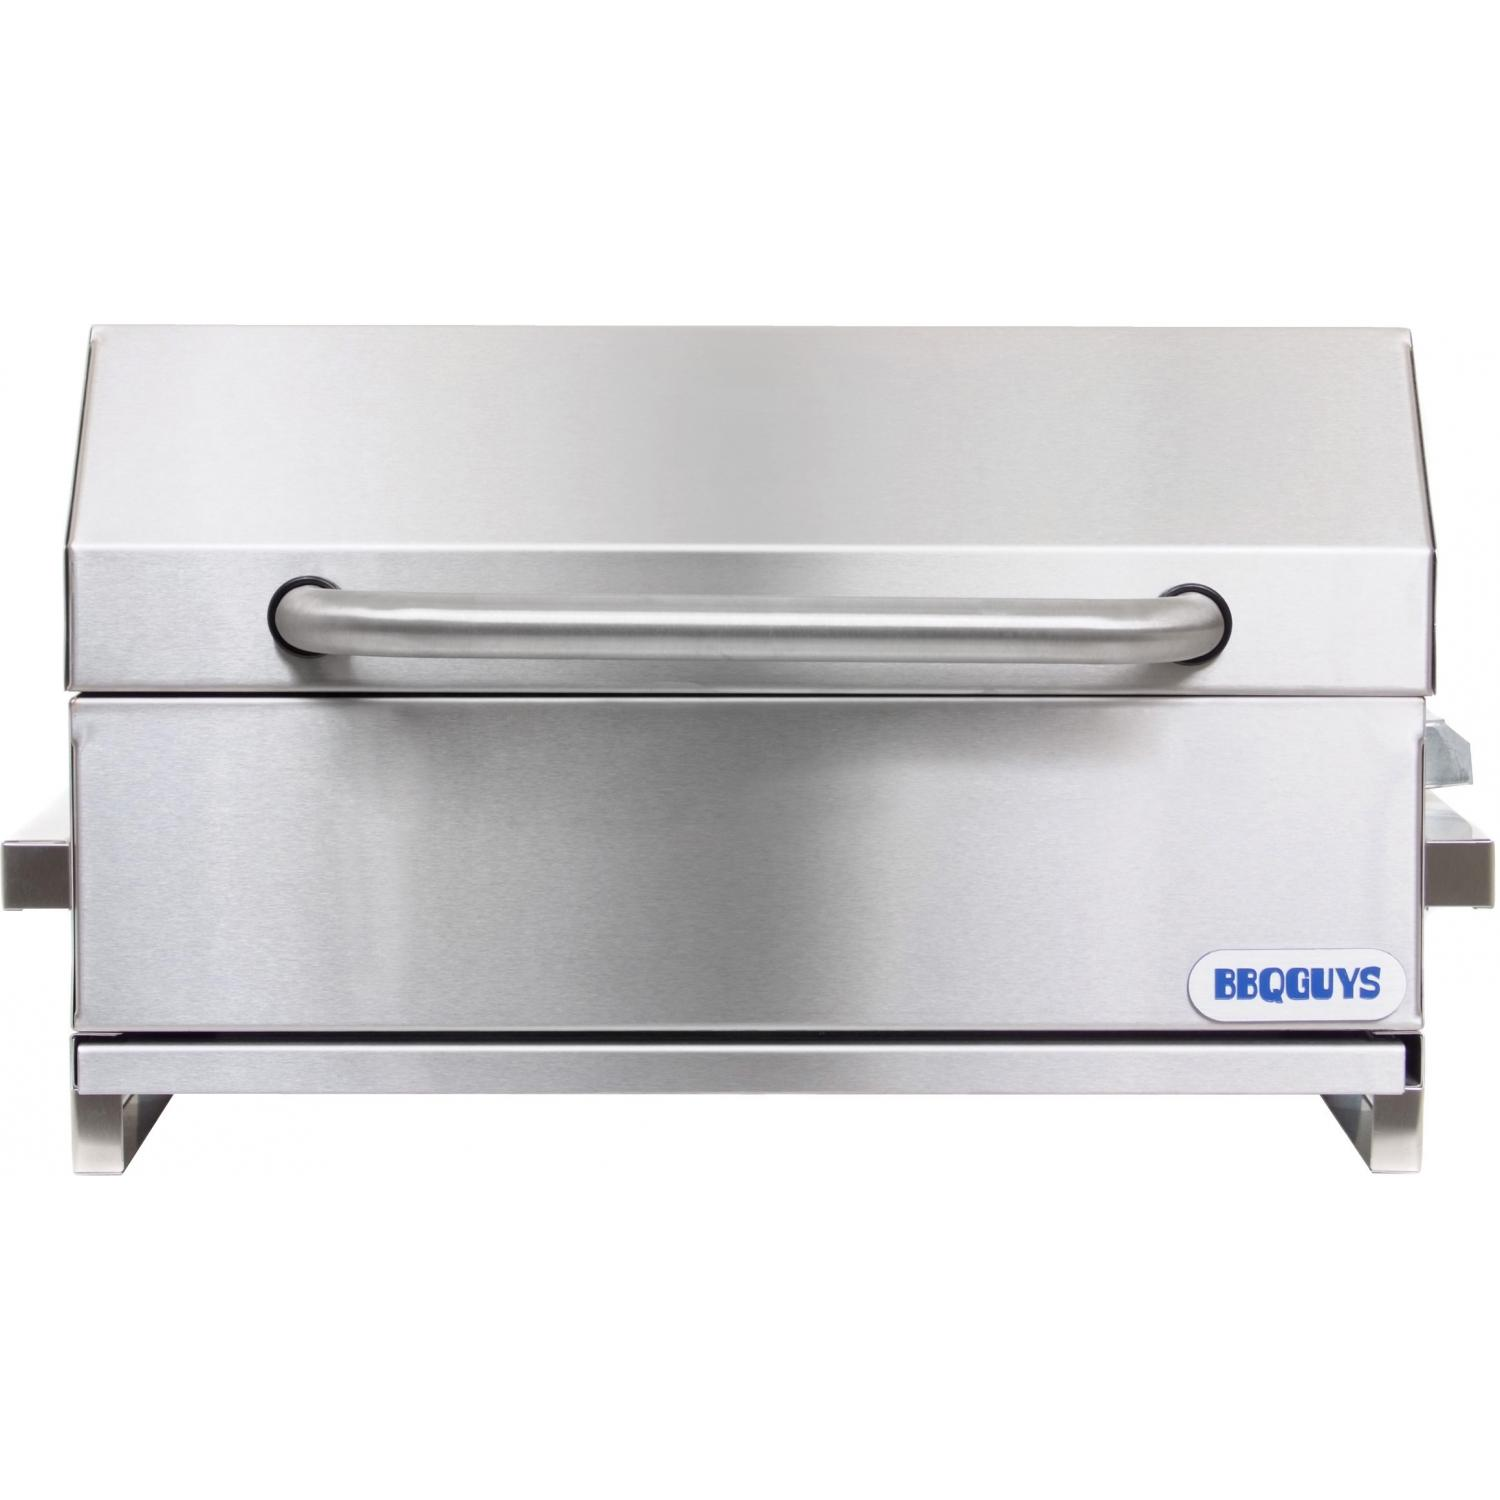 BBQ Guys Stainless Steel Tabletop Electric Grill